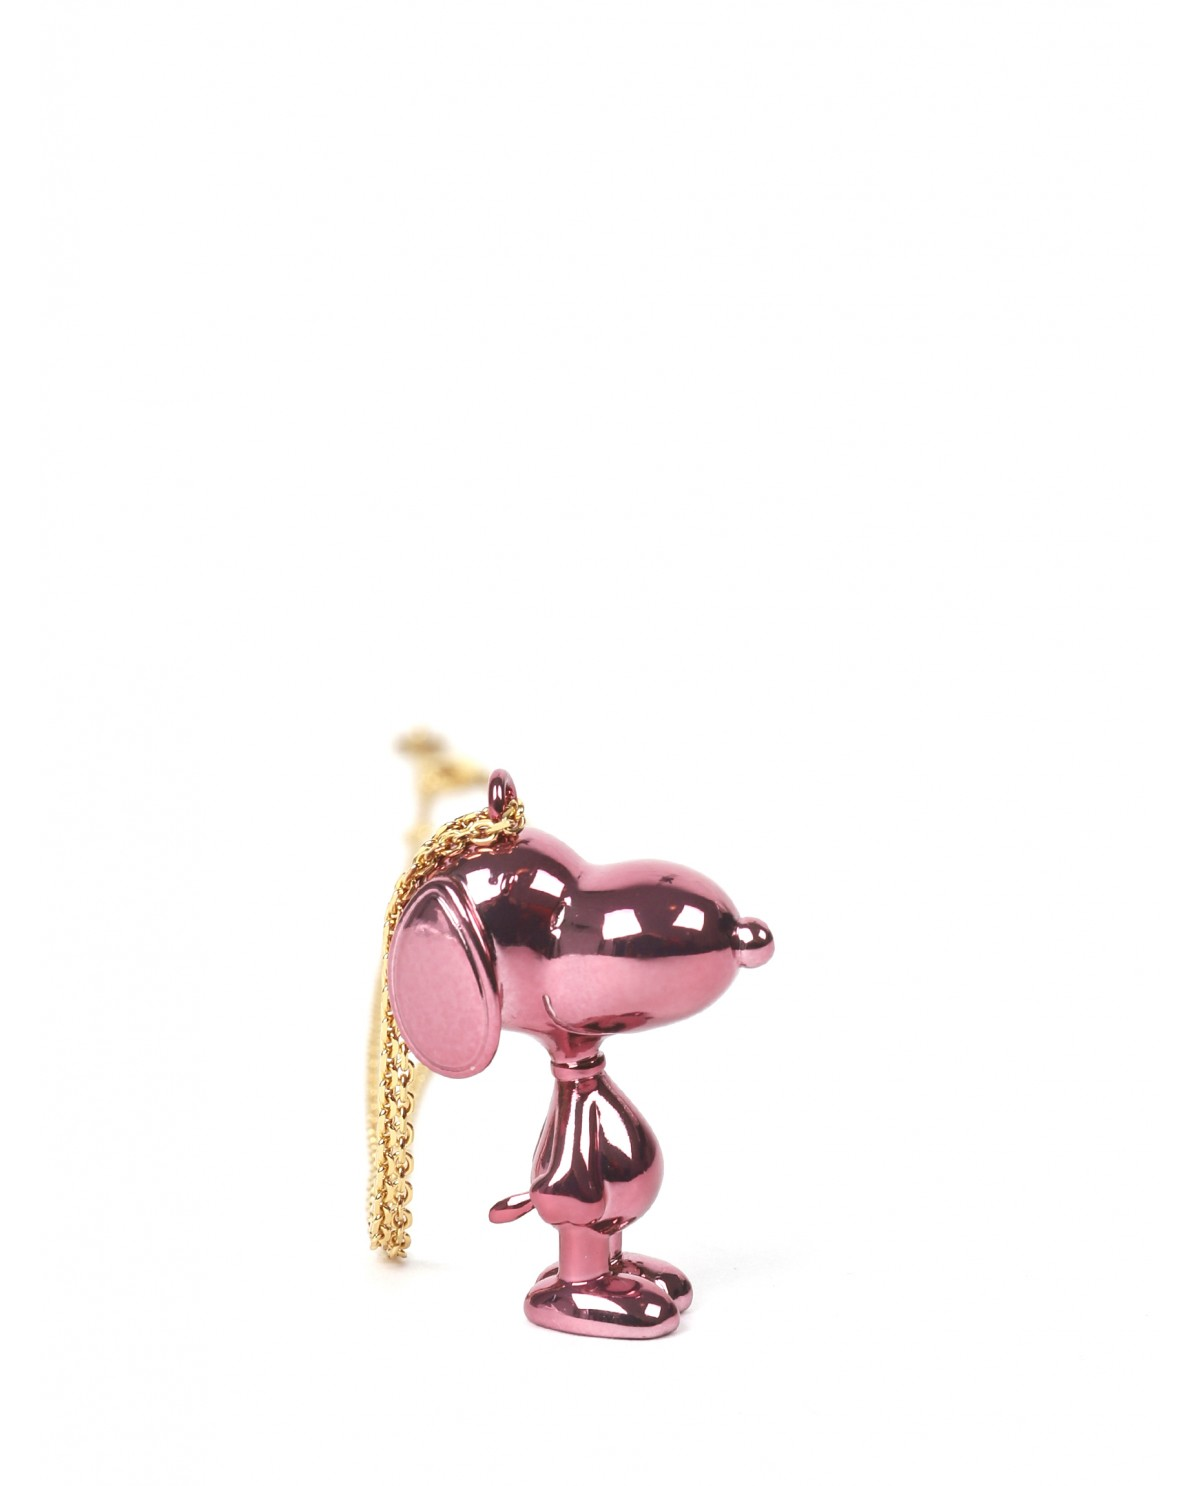 Marc Jacobs pink Peanuts Snoopy necklace